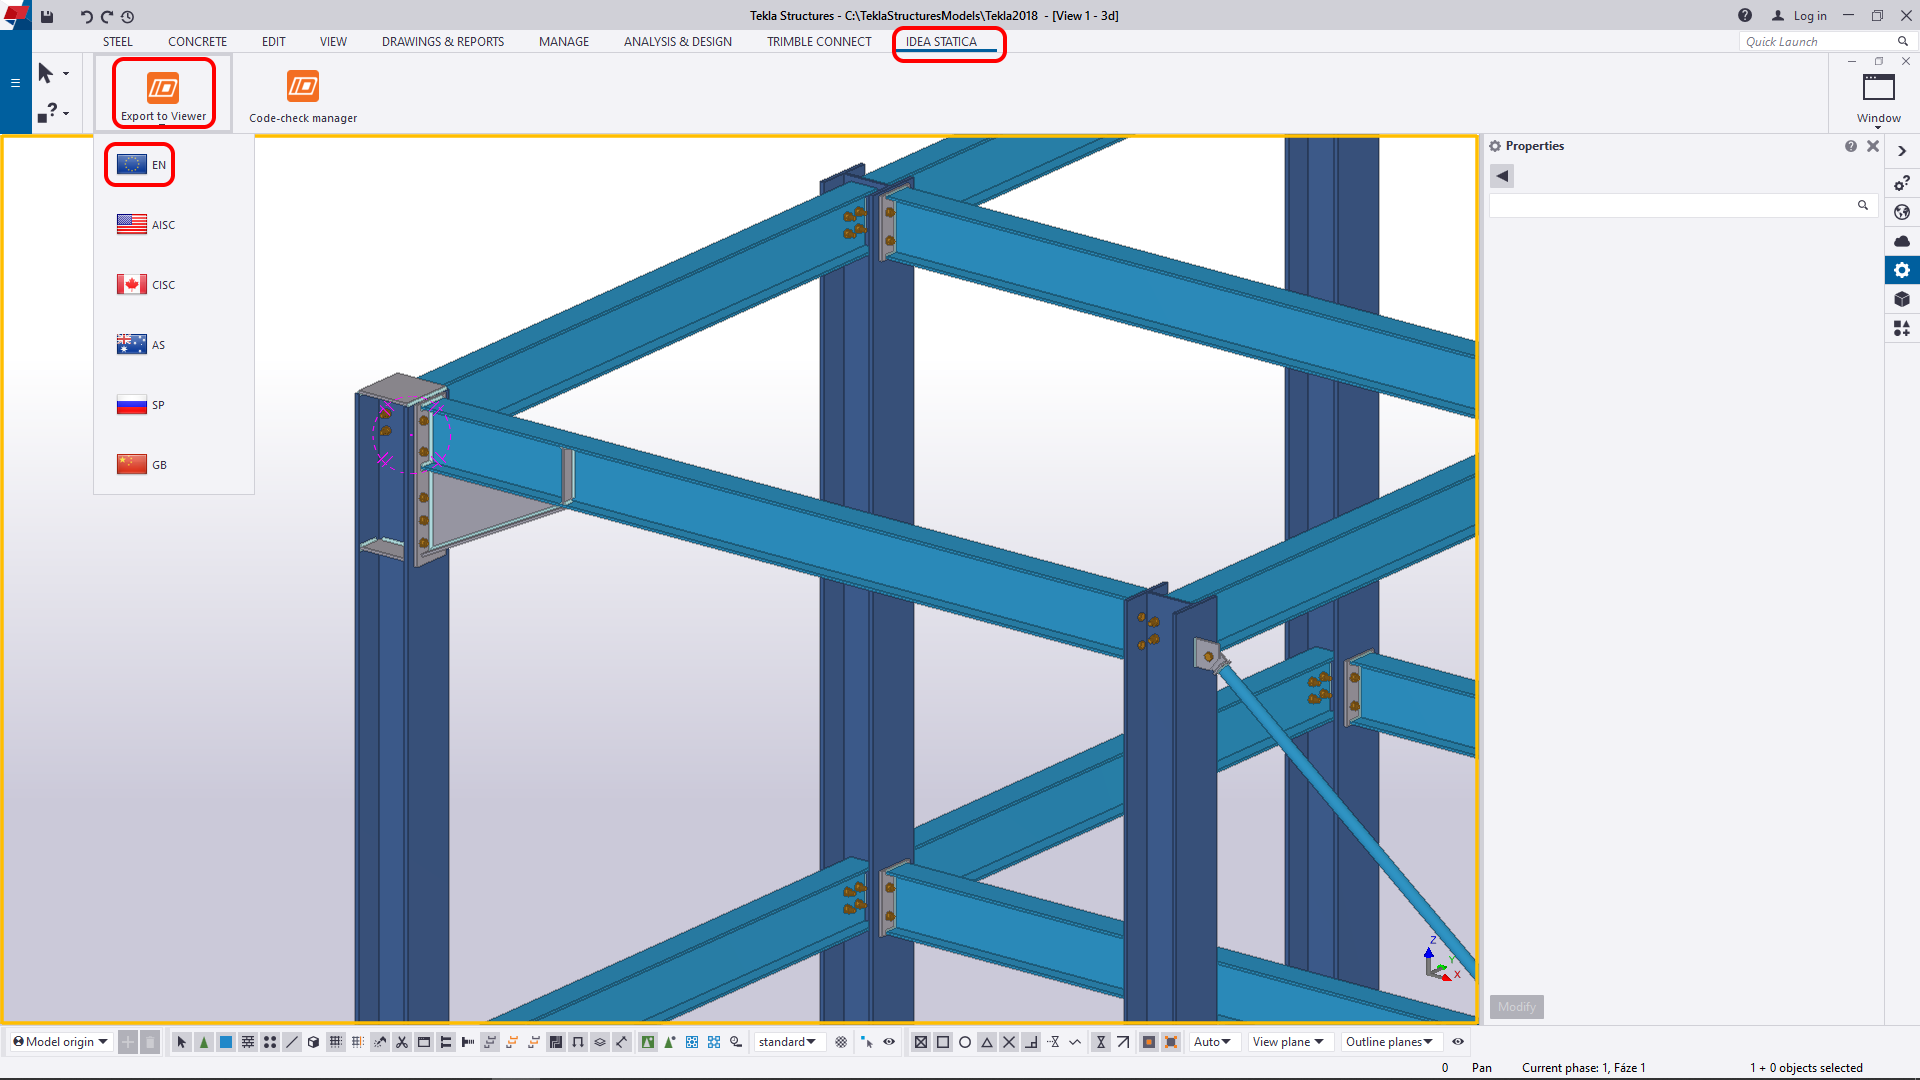 IDEA StatiCa Viewer for Tekla Structures